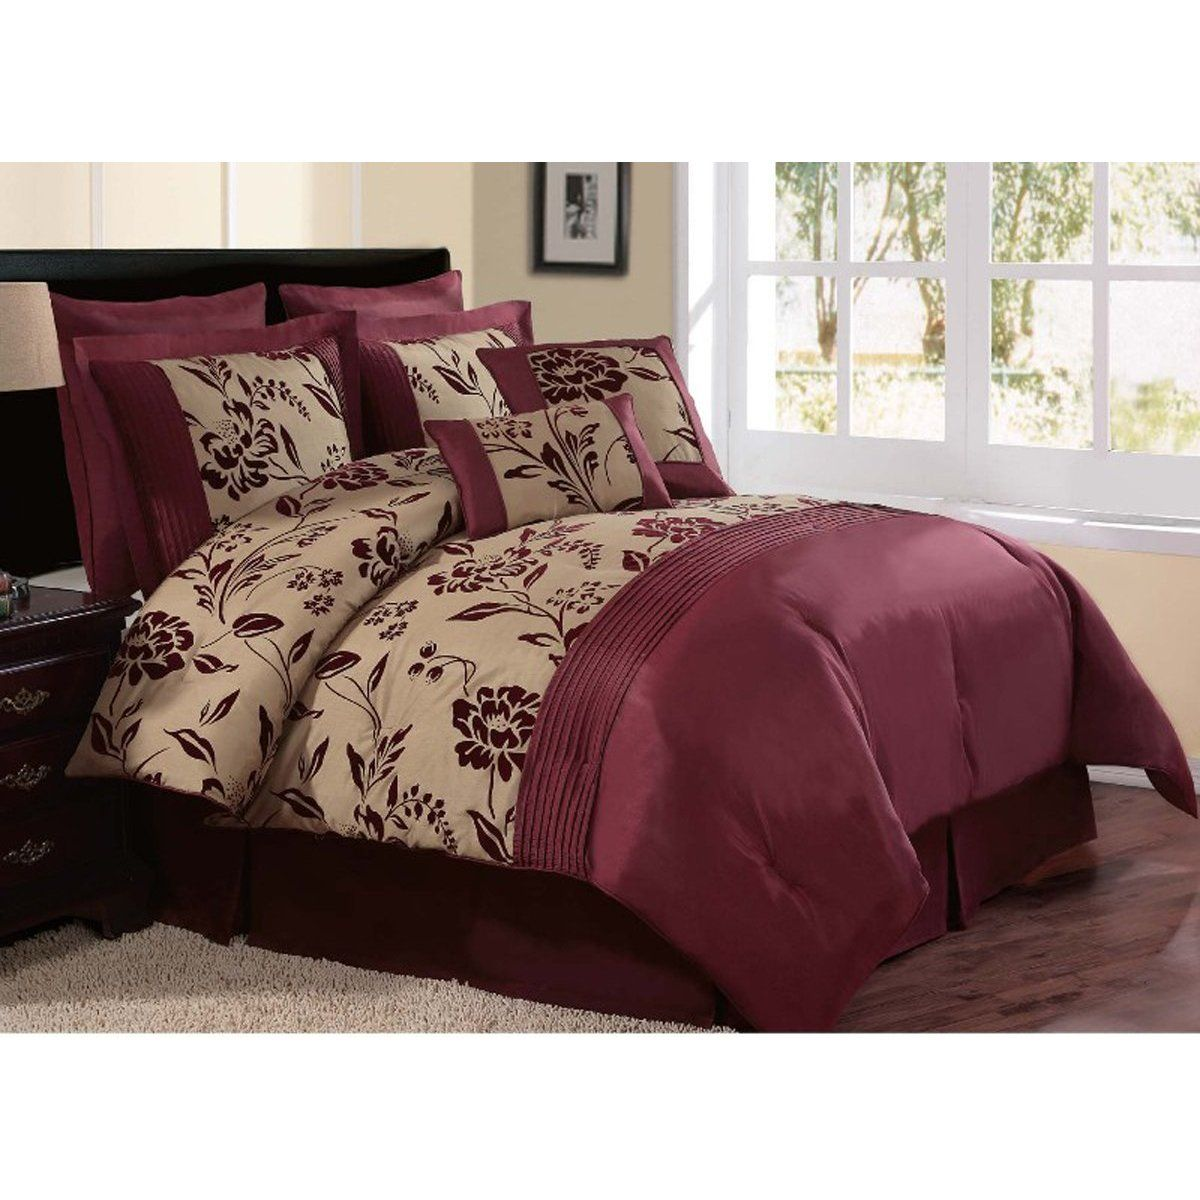 Bedding sets for women - Burgundy Comforter Sets